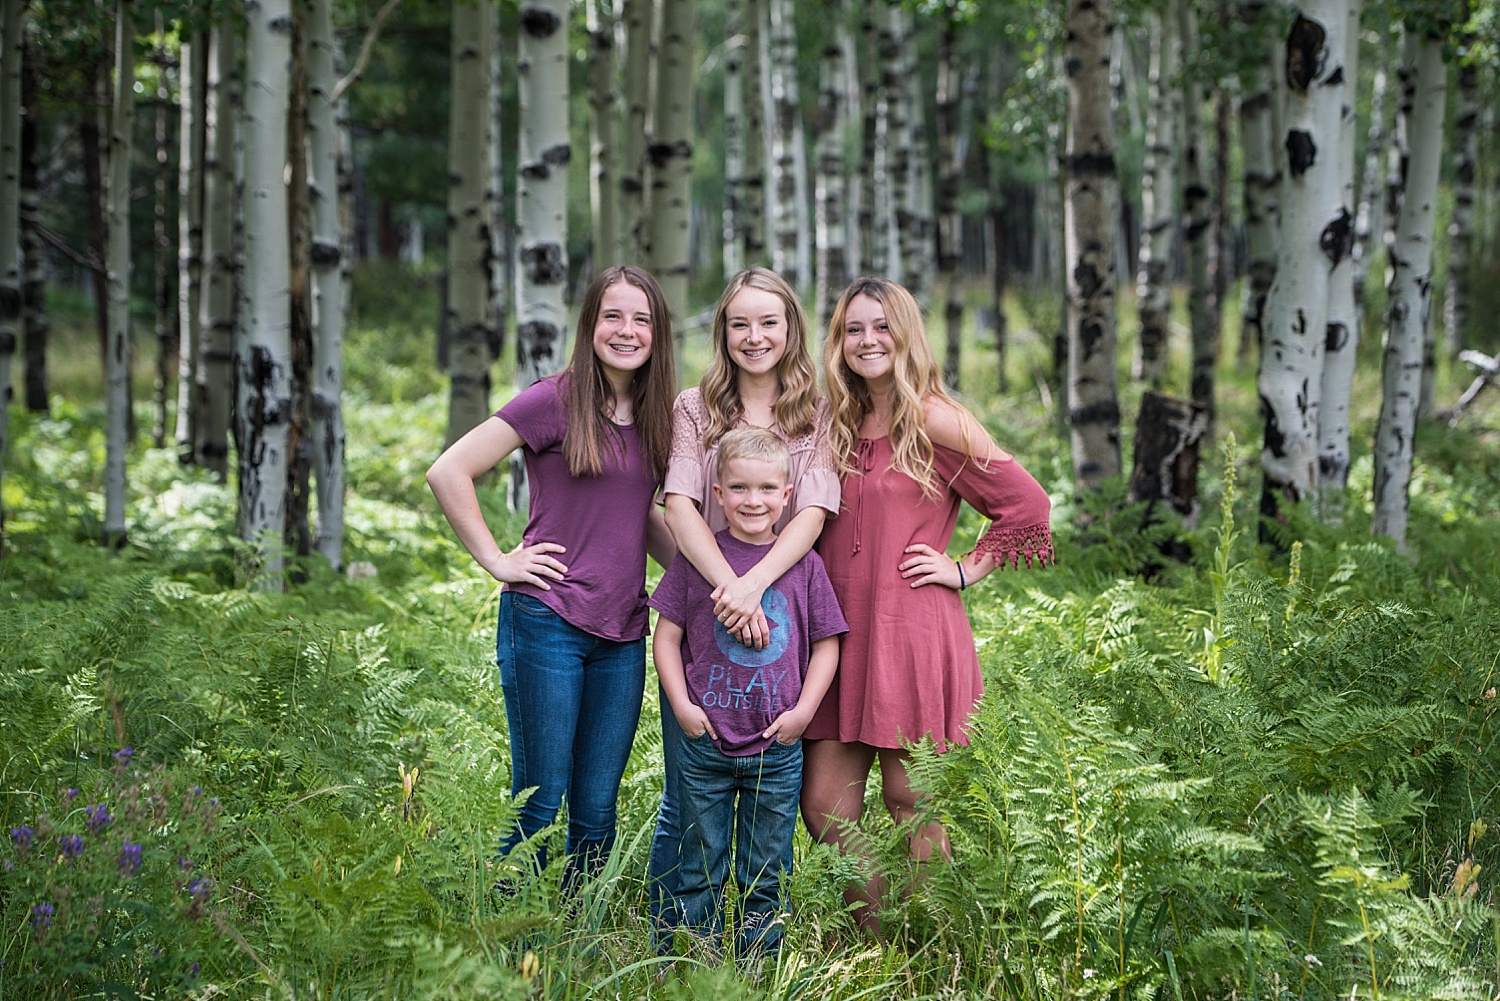 008reece17-flagstaff-family-photos-2017ther2studio-